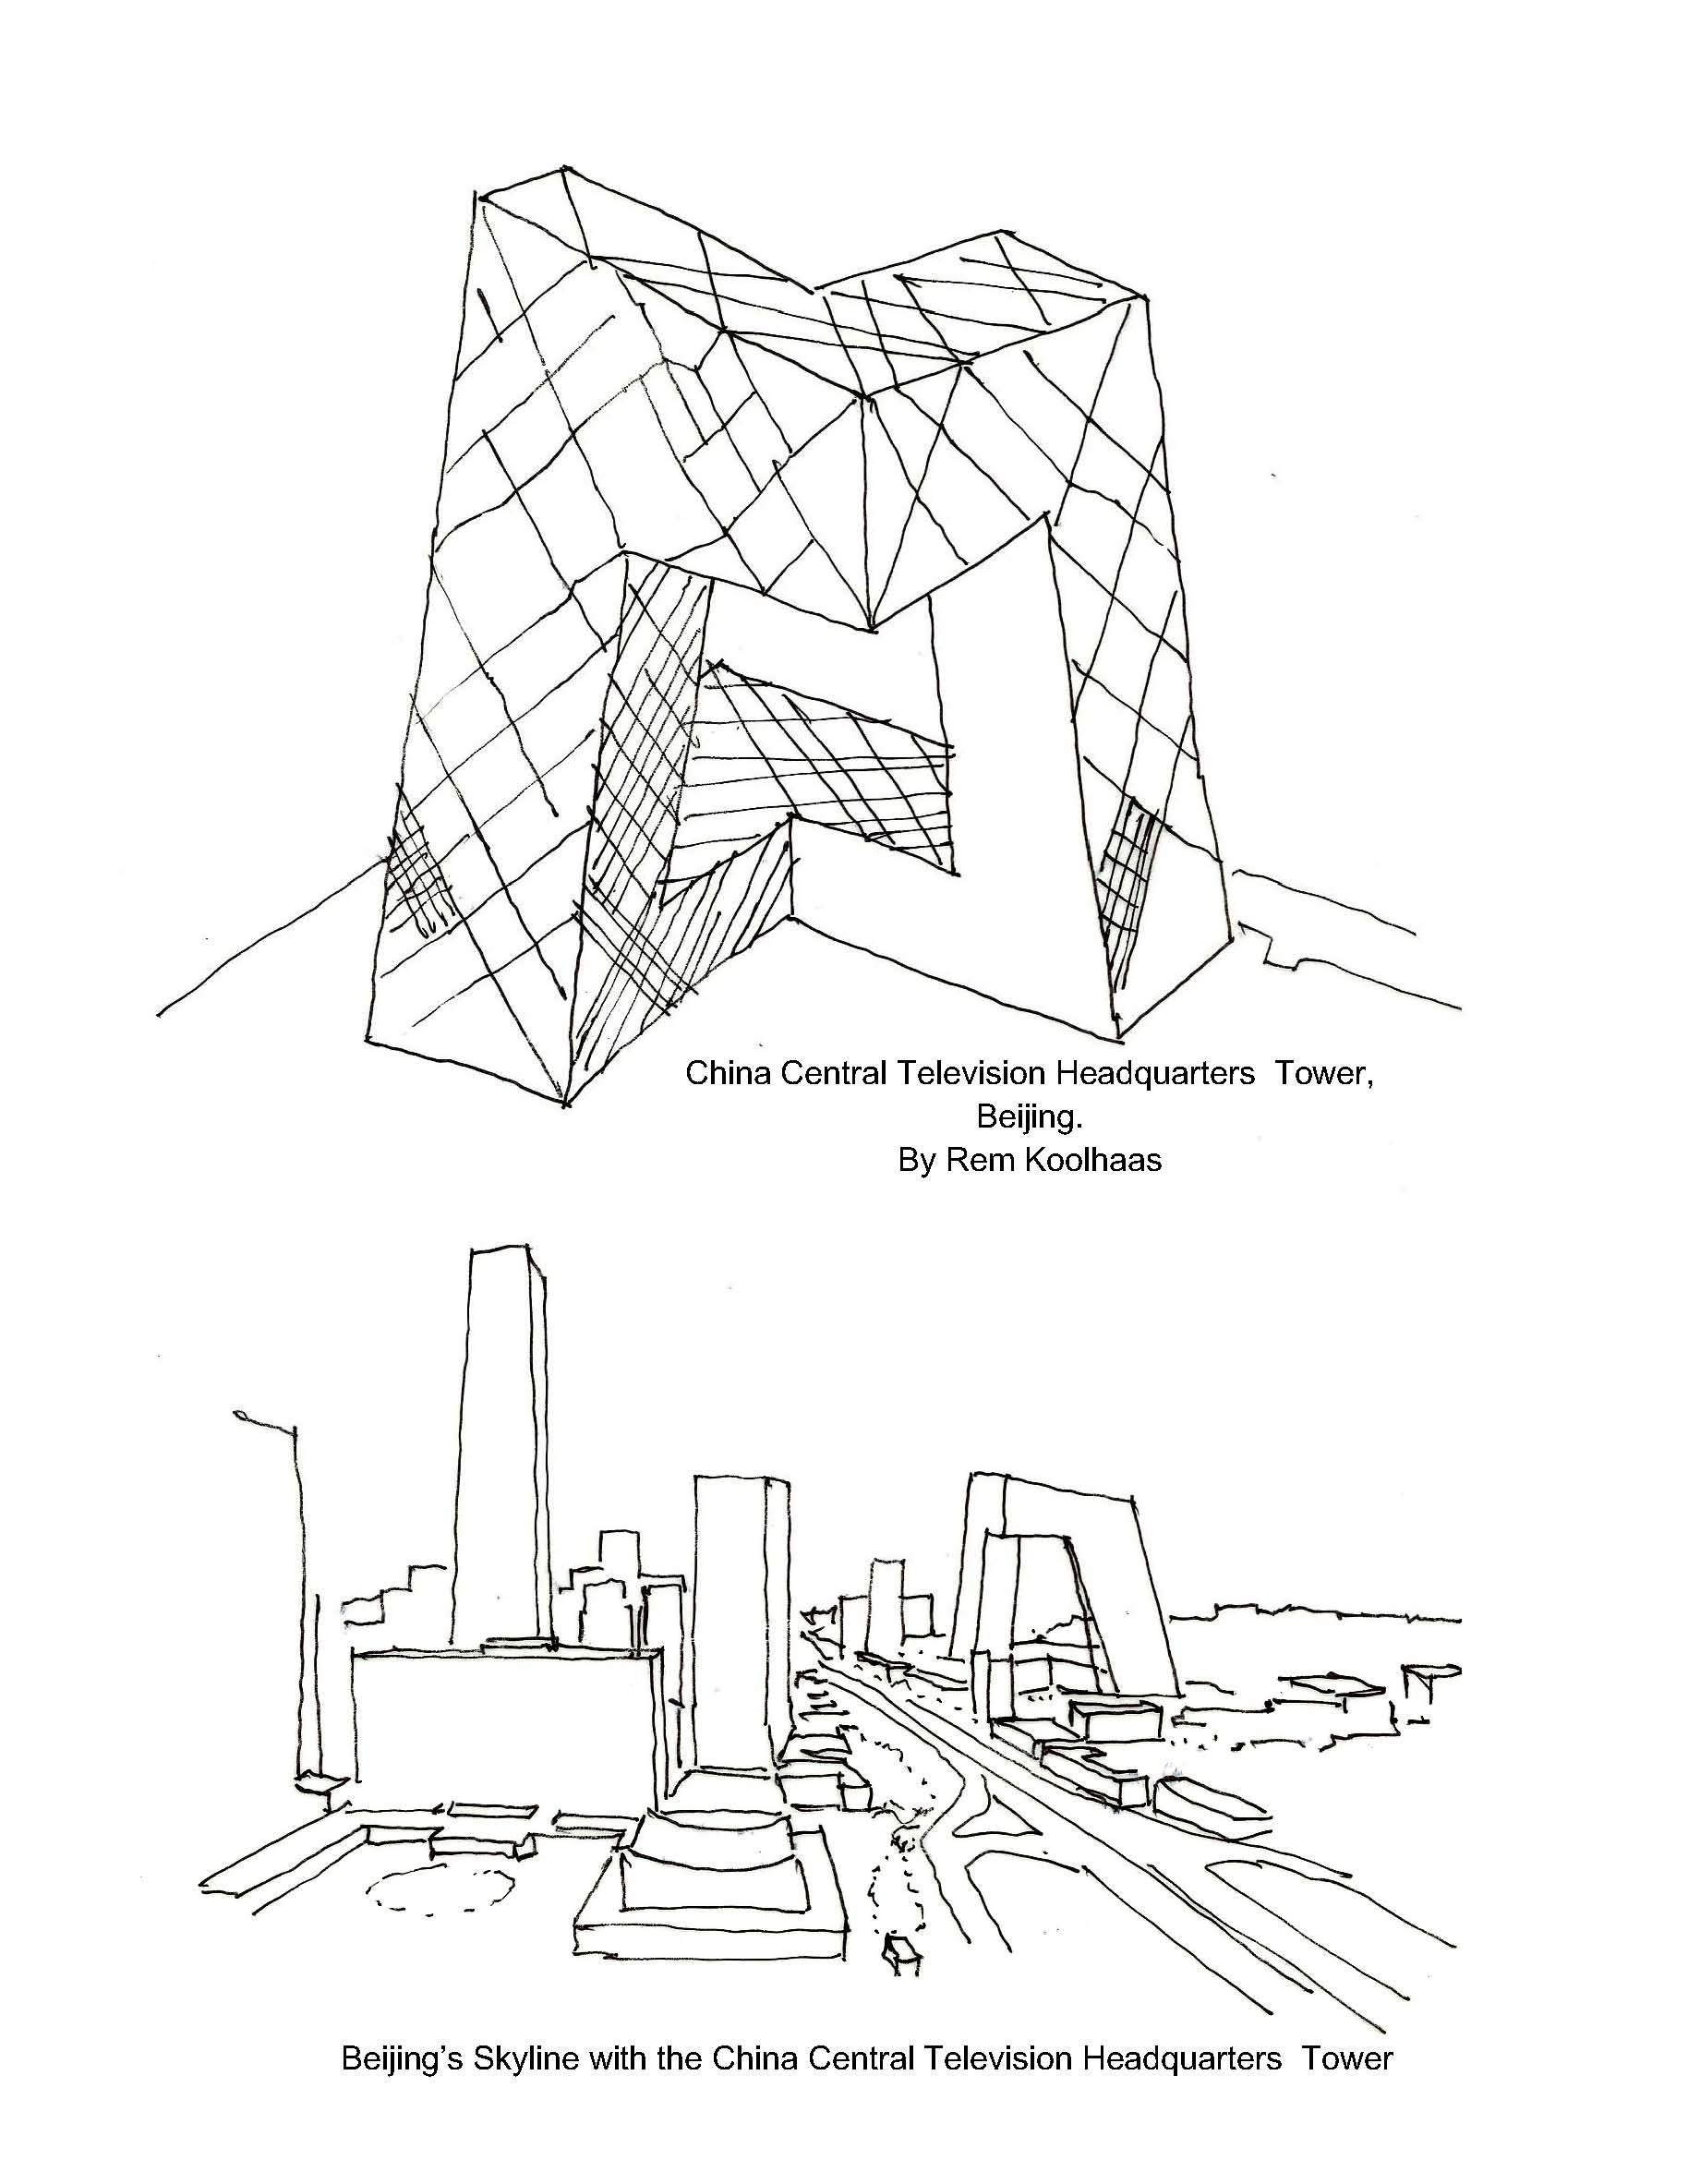 By The Rem Koolhaas Cctv Headquarters Architecture